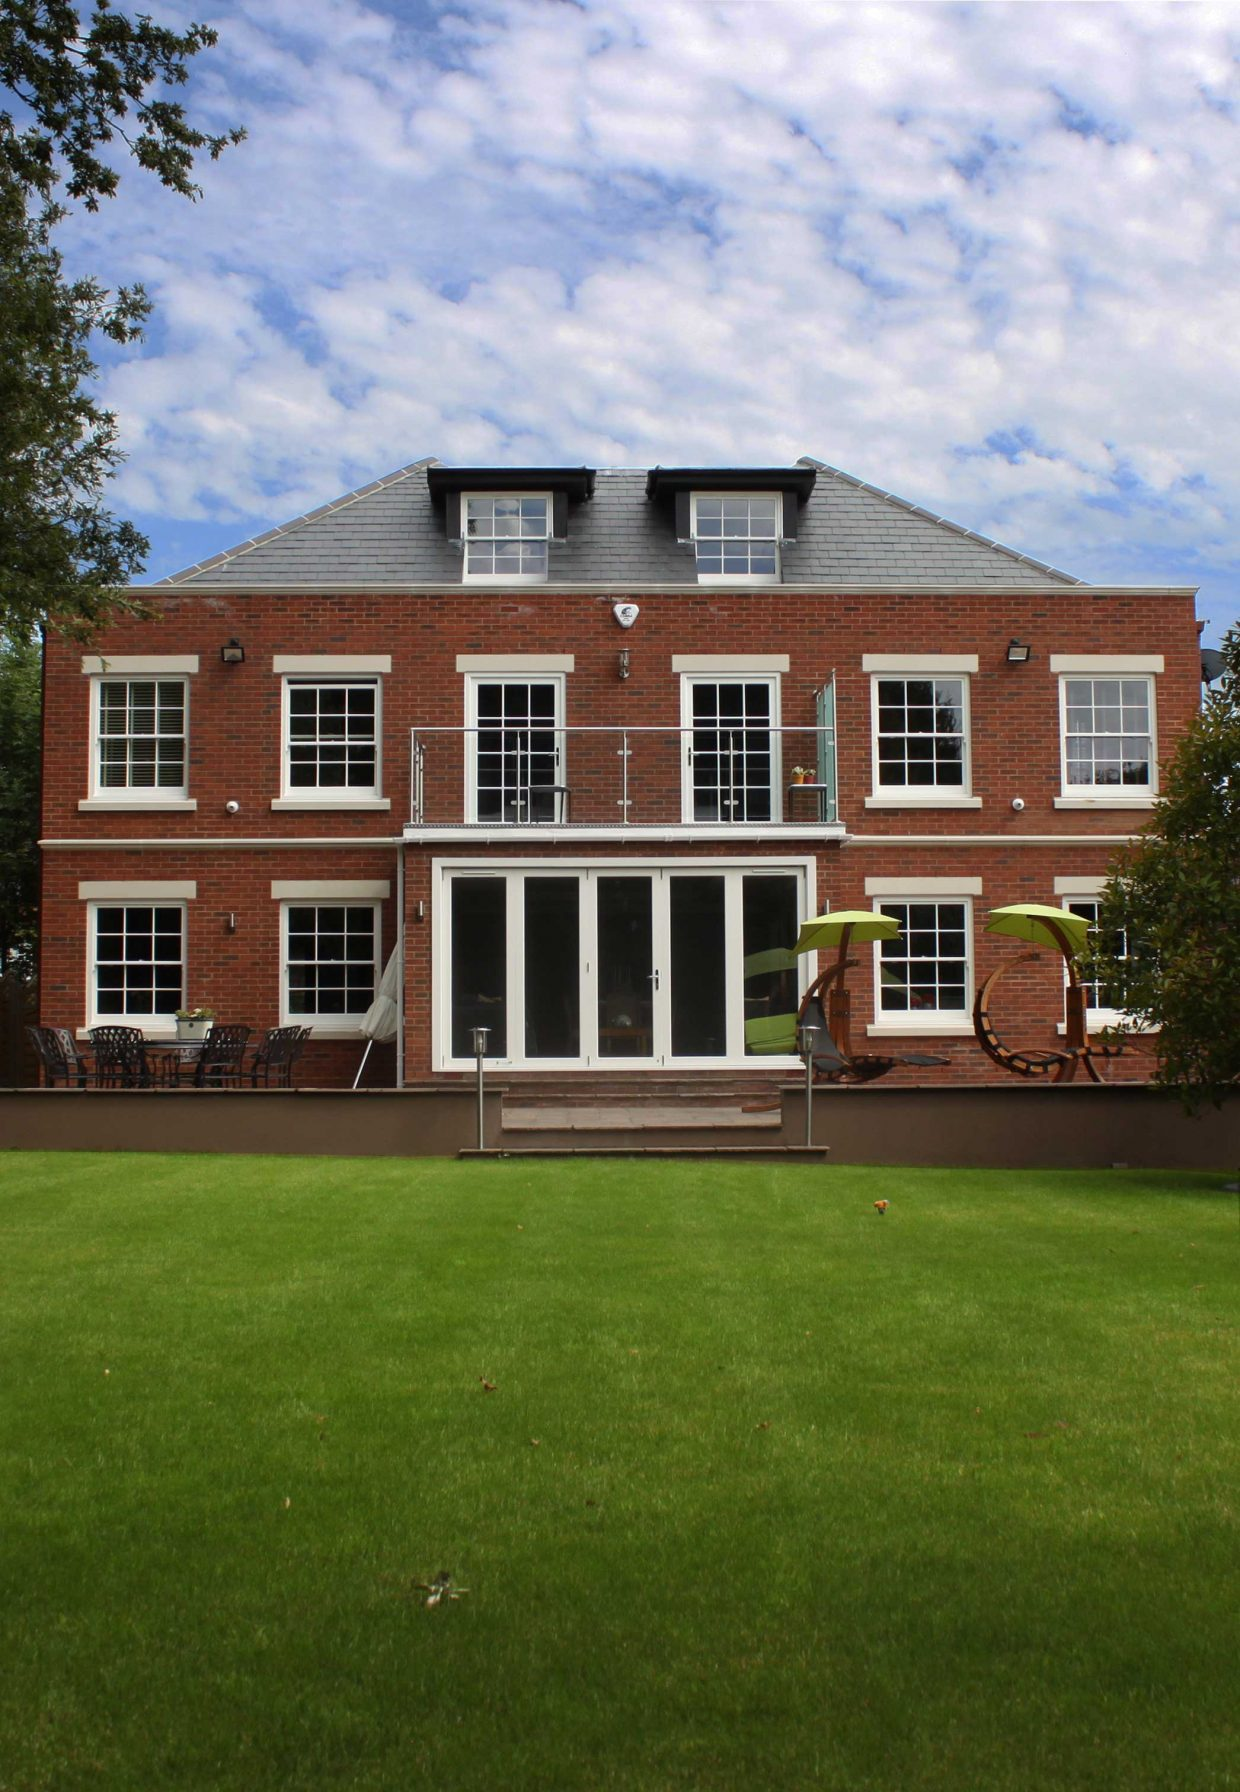 Gallery Image: Long external shot of rear facade of Chigwell mansion, including Georgian 6 over 6 sash windows and Bifold Doors.